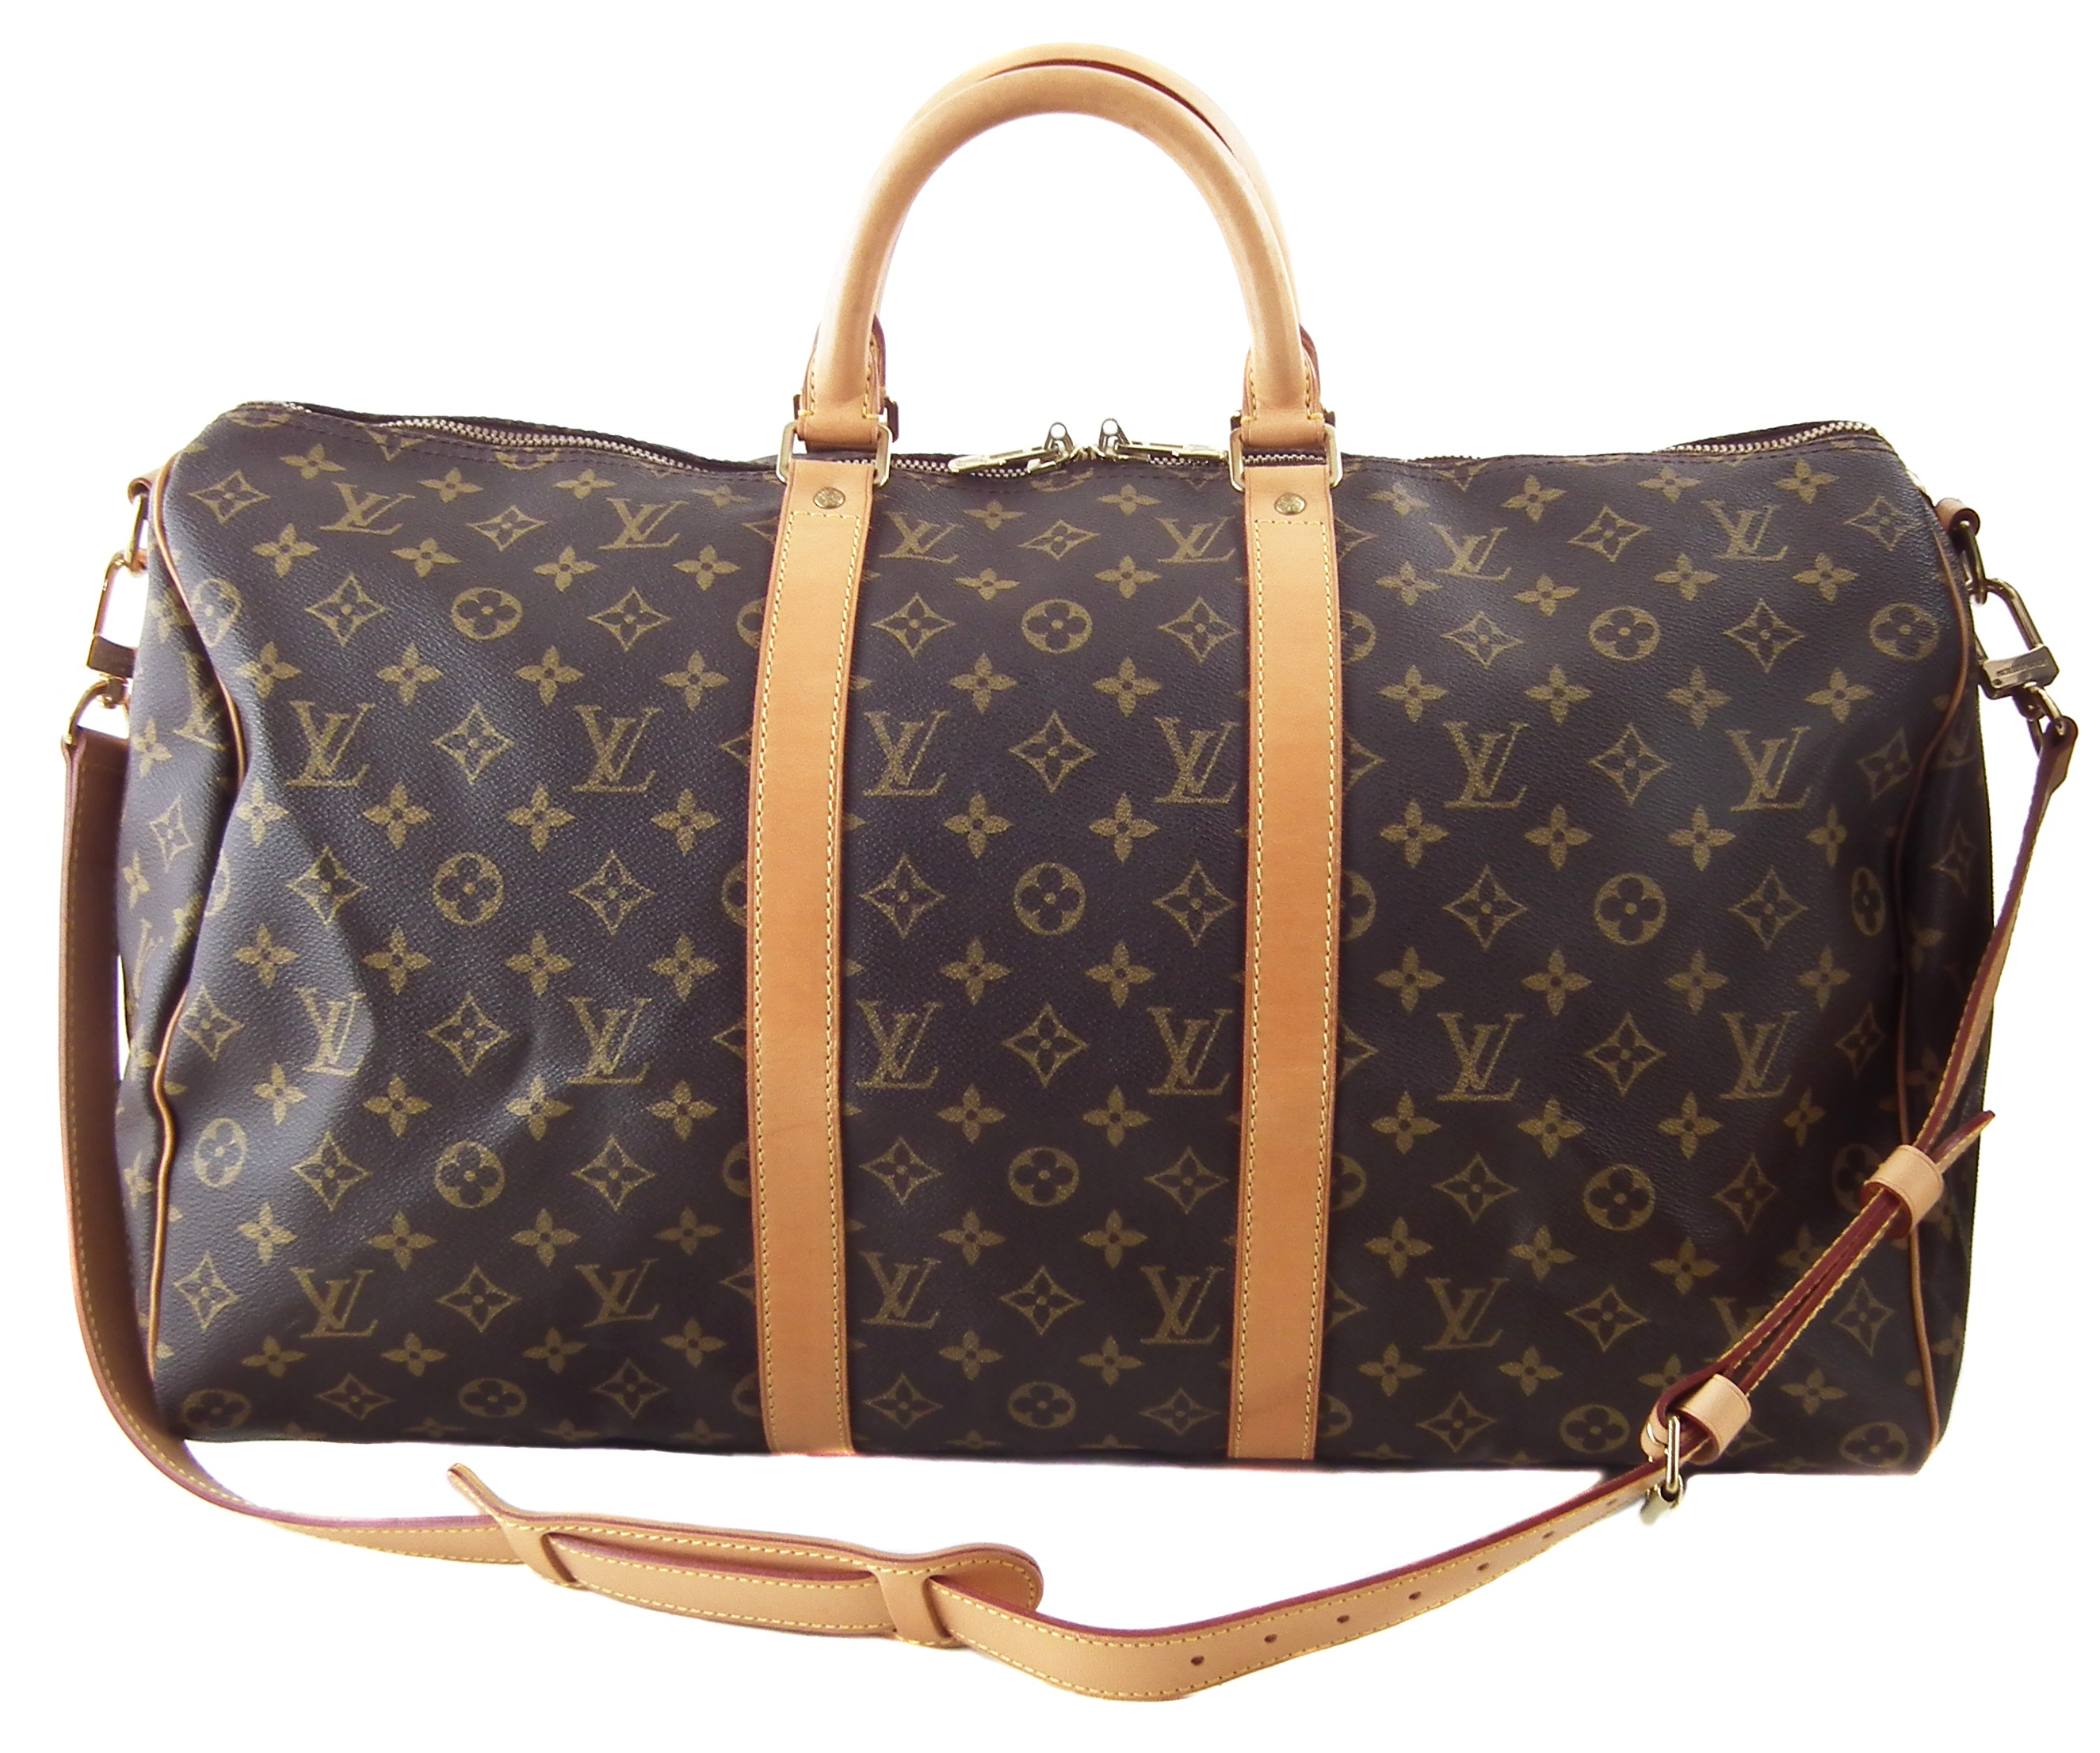 A Louis Vuitton monogram Keepall Bandoulière 50 luggage bag,